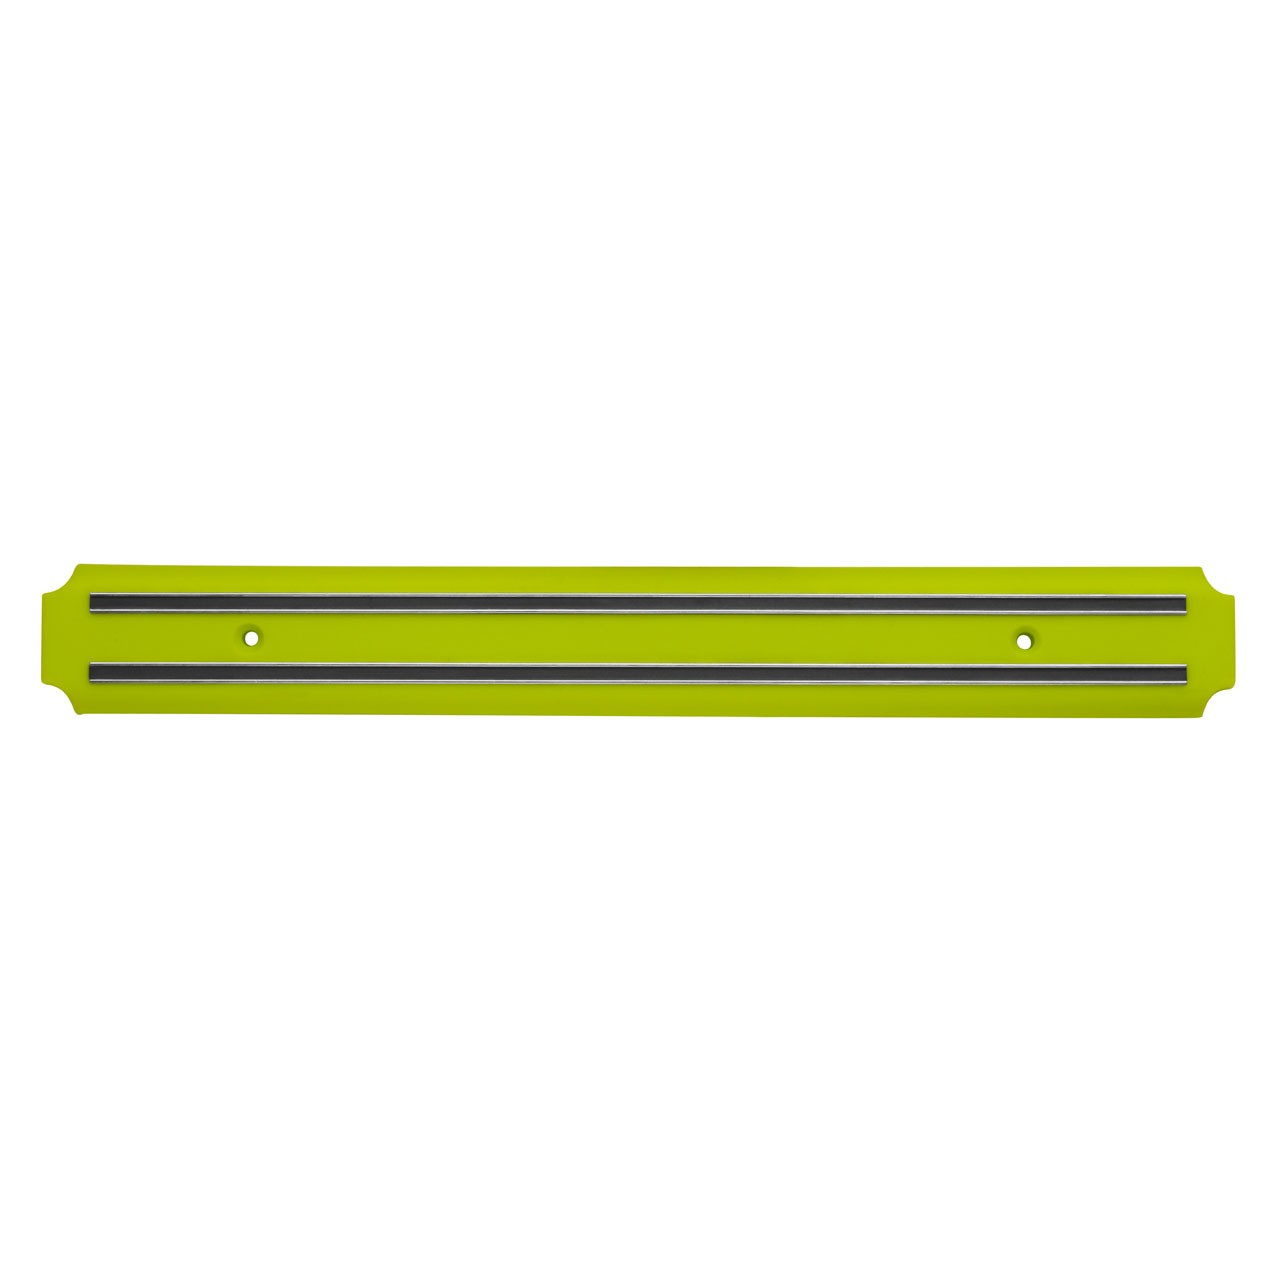 Magnetic Knife Storage Bar - Lime Green